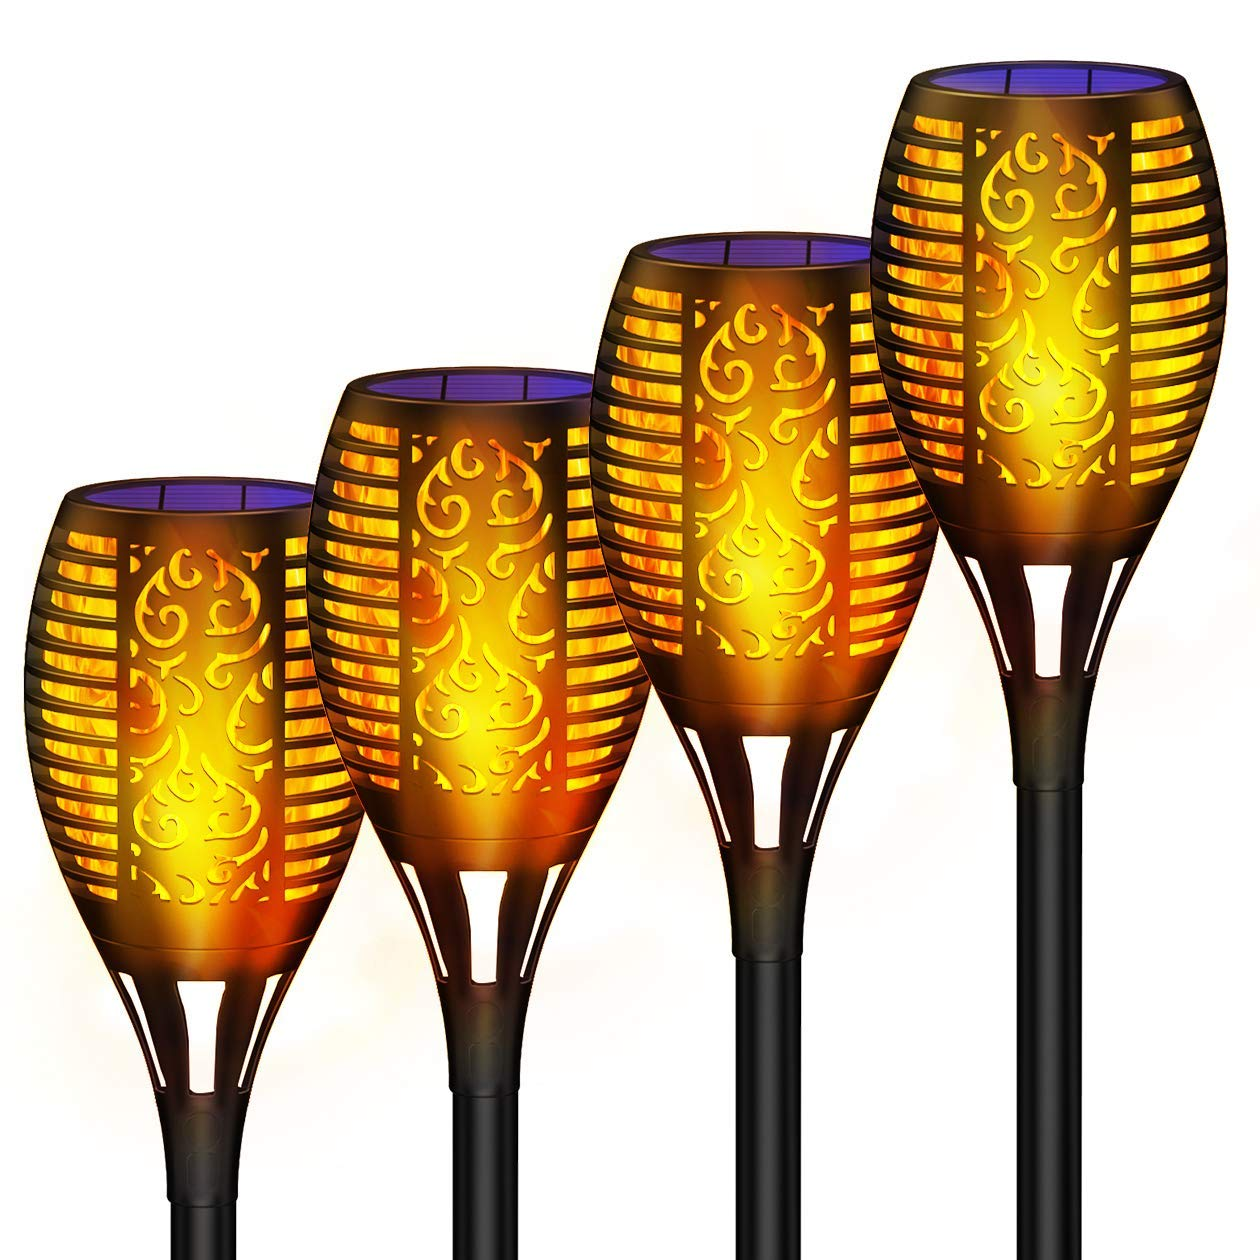 Wiw Solar Torch Light, Outdoor Waterproof Flickering Flames Solar Torches Dancing Flames Landscape USB Charging Decoration Lighting Lamp for Garden Patio Deck Yard Driveway Pathway (4 Pack)